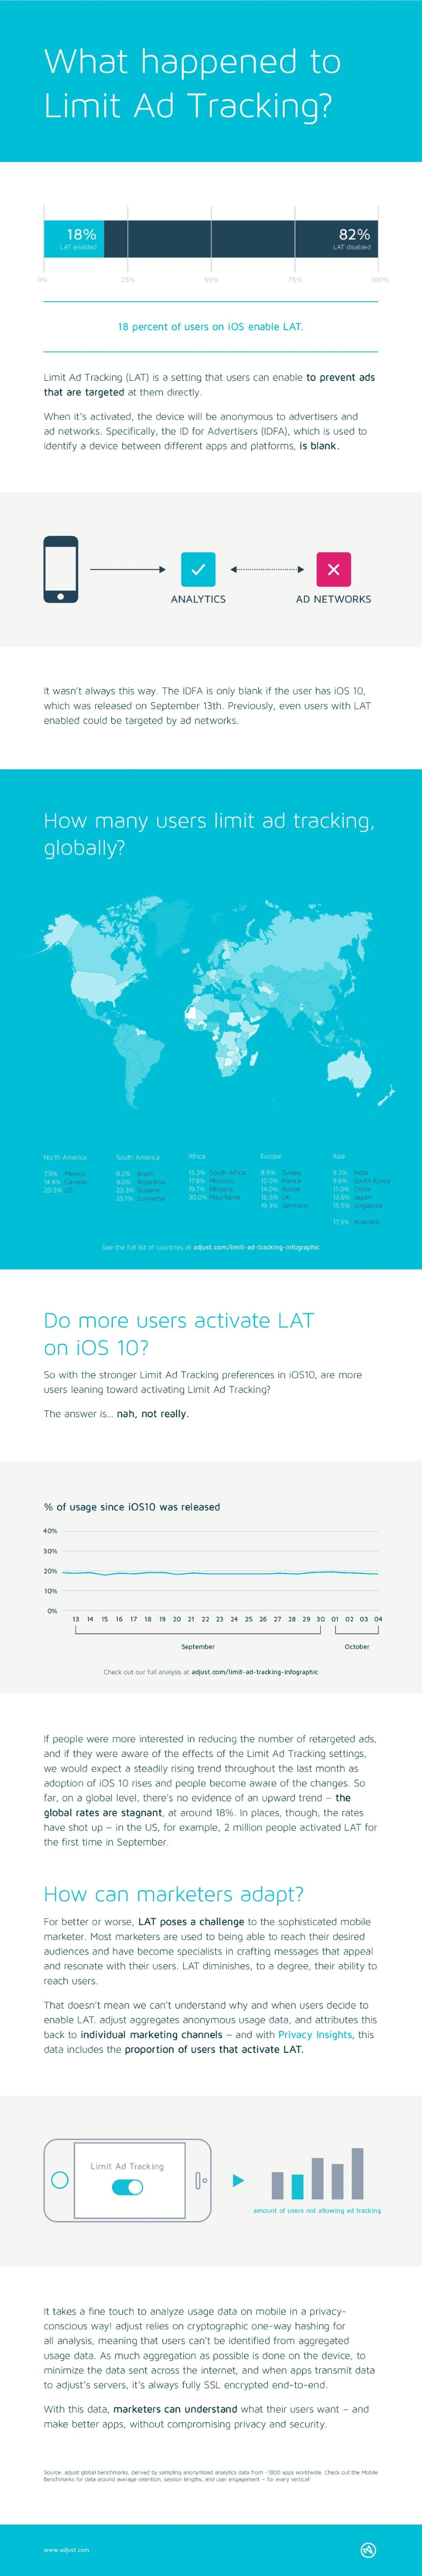 Limit-Ad-Tracking Infographic